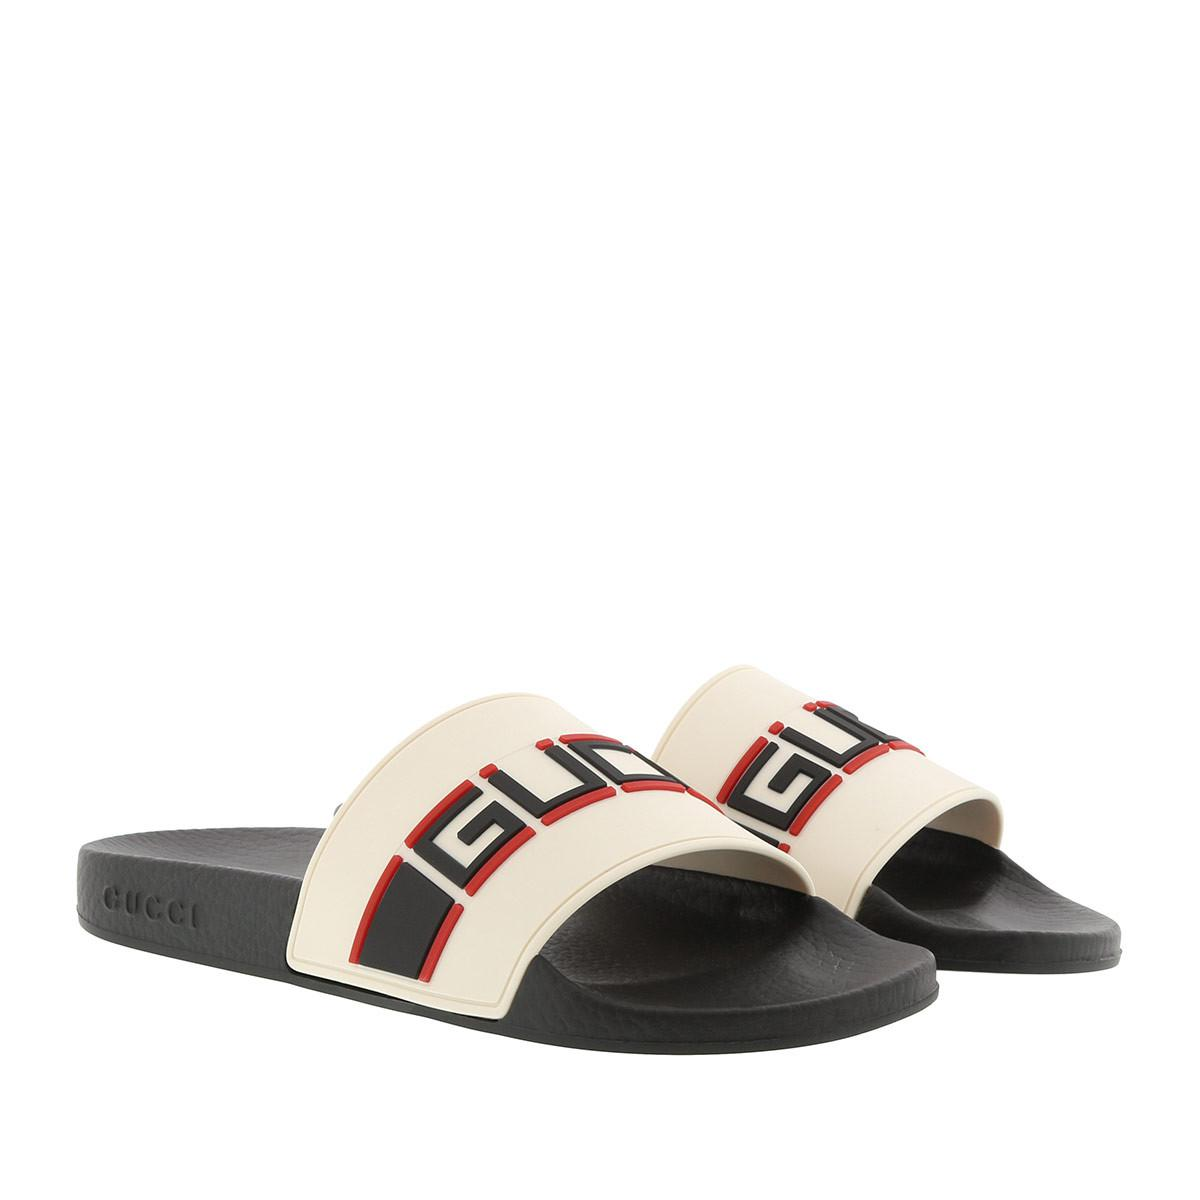 dcd214b06131f2 Gucci Rubber Slides Black white in Black - Save 20% - Lyst